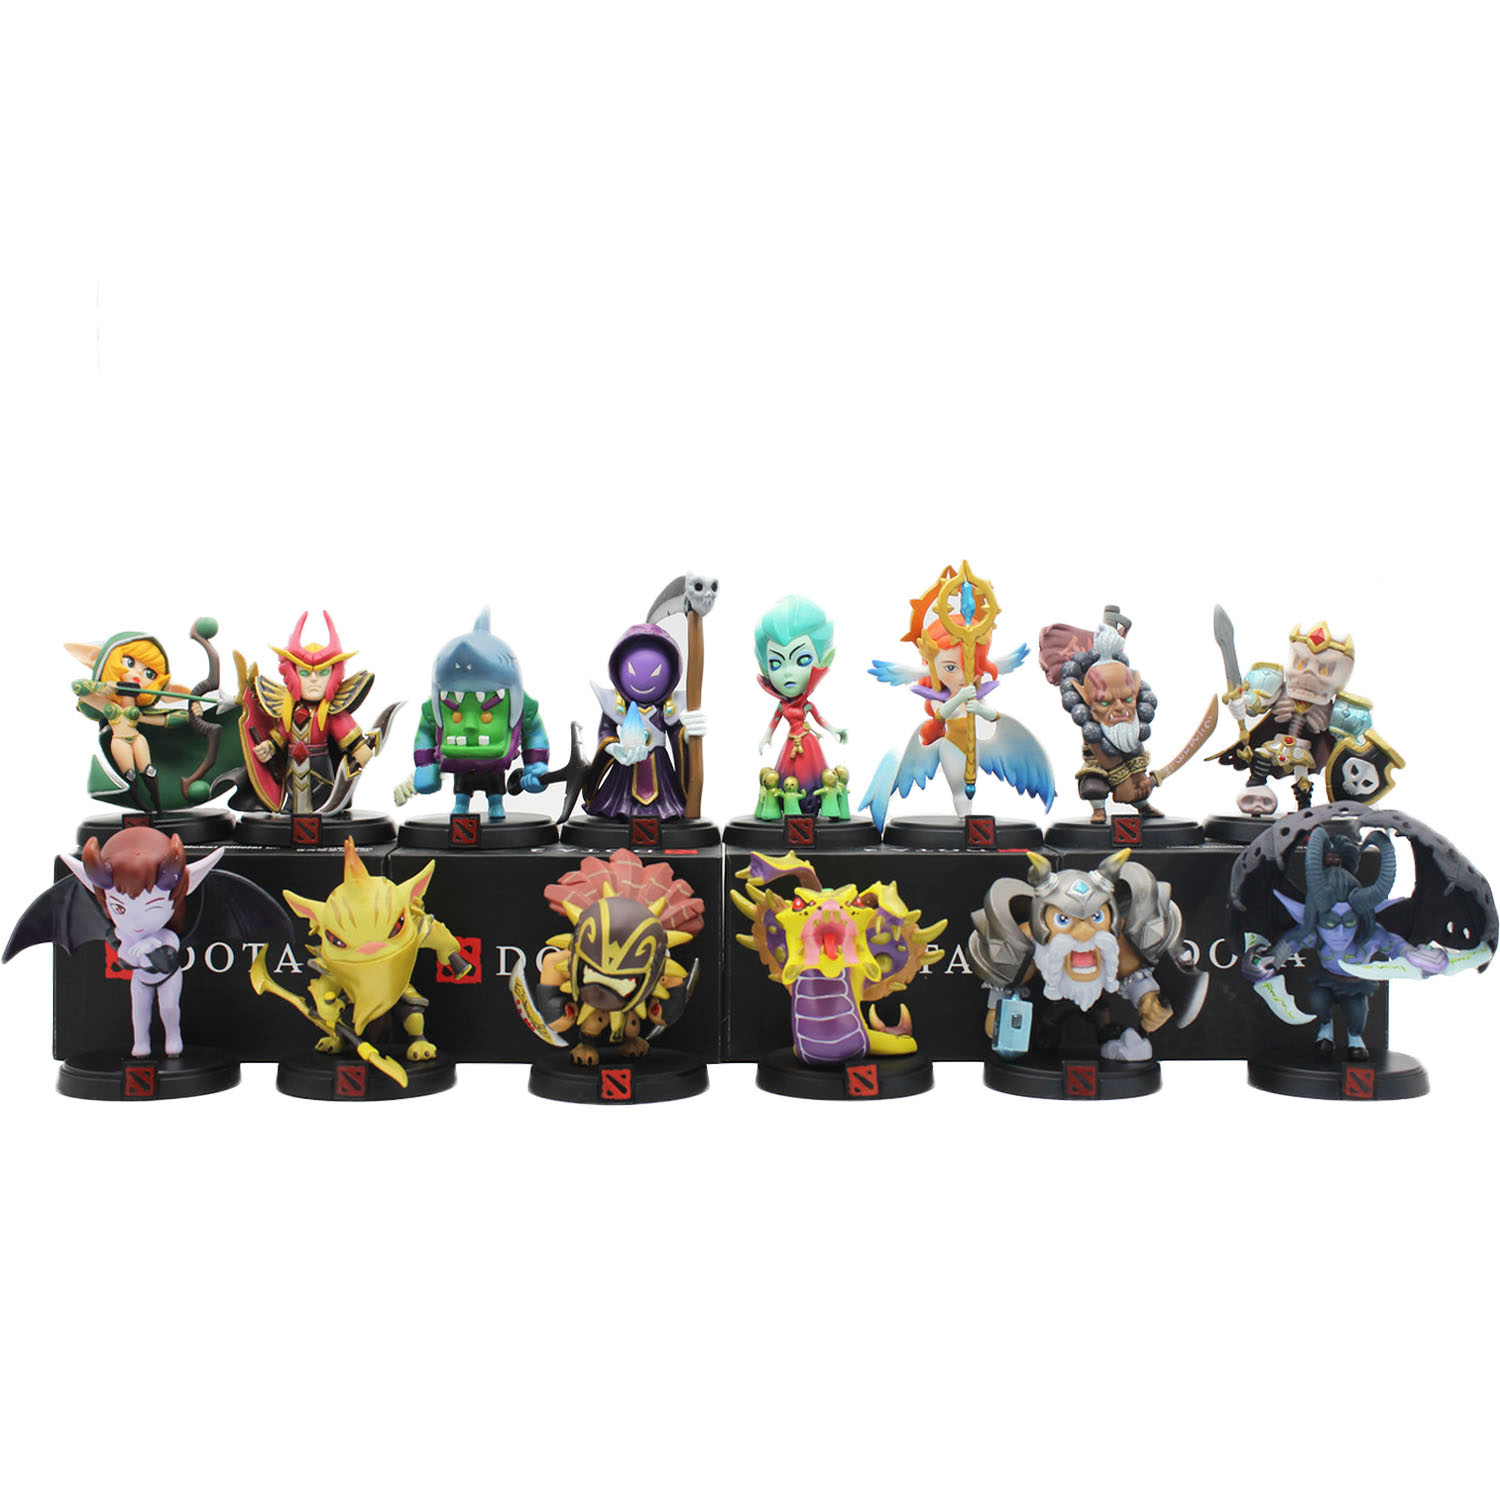 WOW DOTA 2 Game Figure Bounty Hunter BH Strygwyr Krobelus Toxic Warlock shadow juggernaut soul keeper Action Figures dota2 Toys